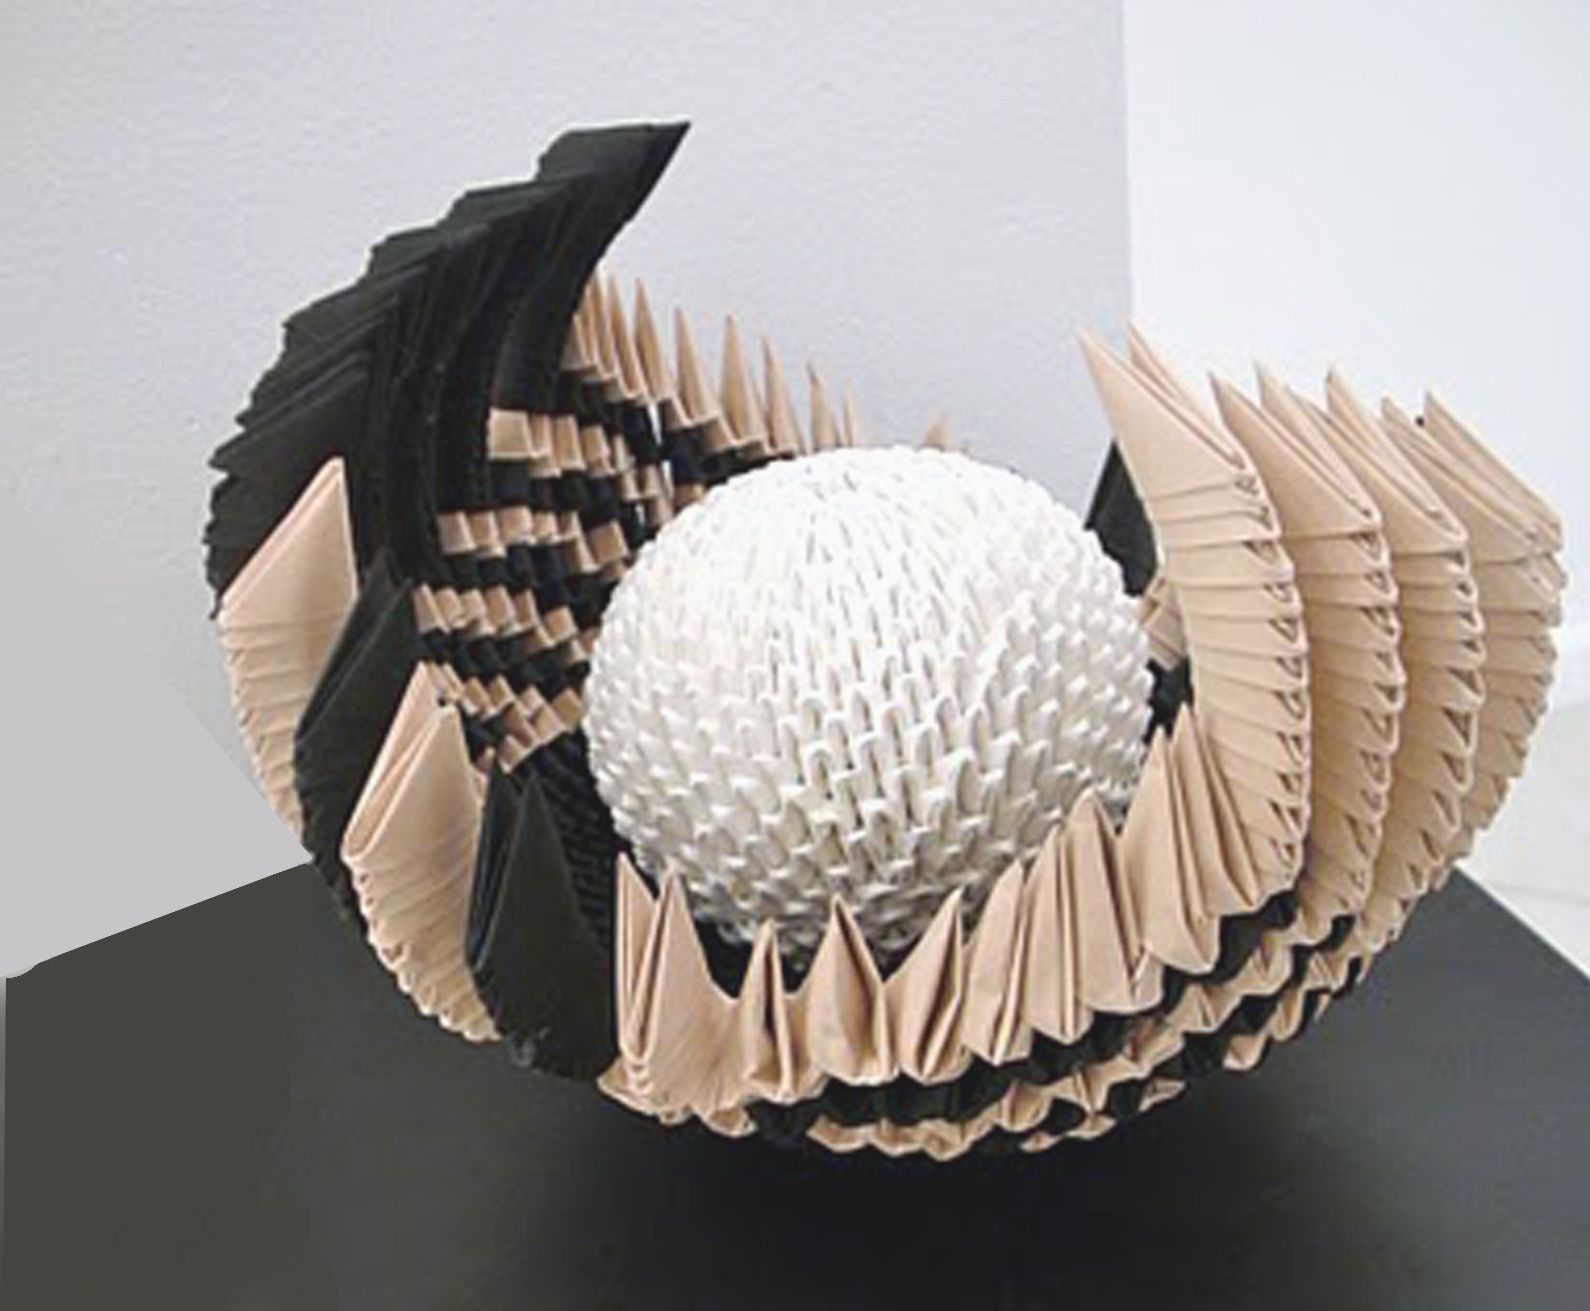 chinese modular origami origami 3d pinterest modular origami origami and 3d origami. Black Bedroom Furniture Sets. Home Design Ideas